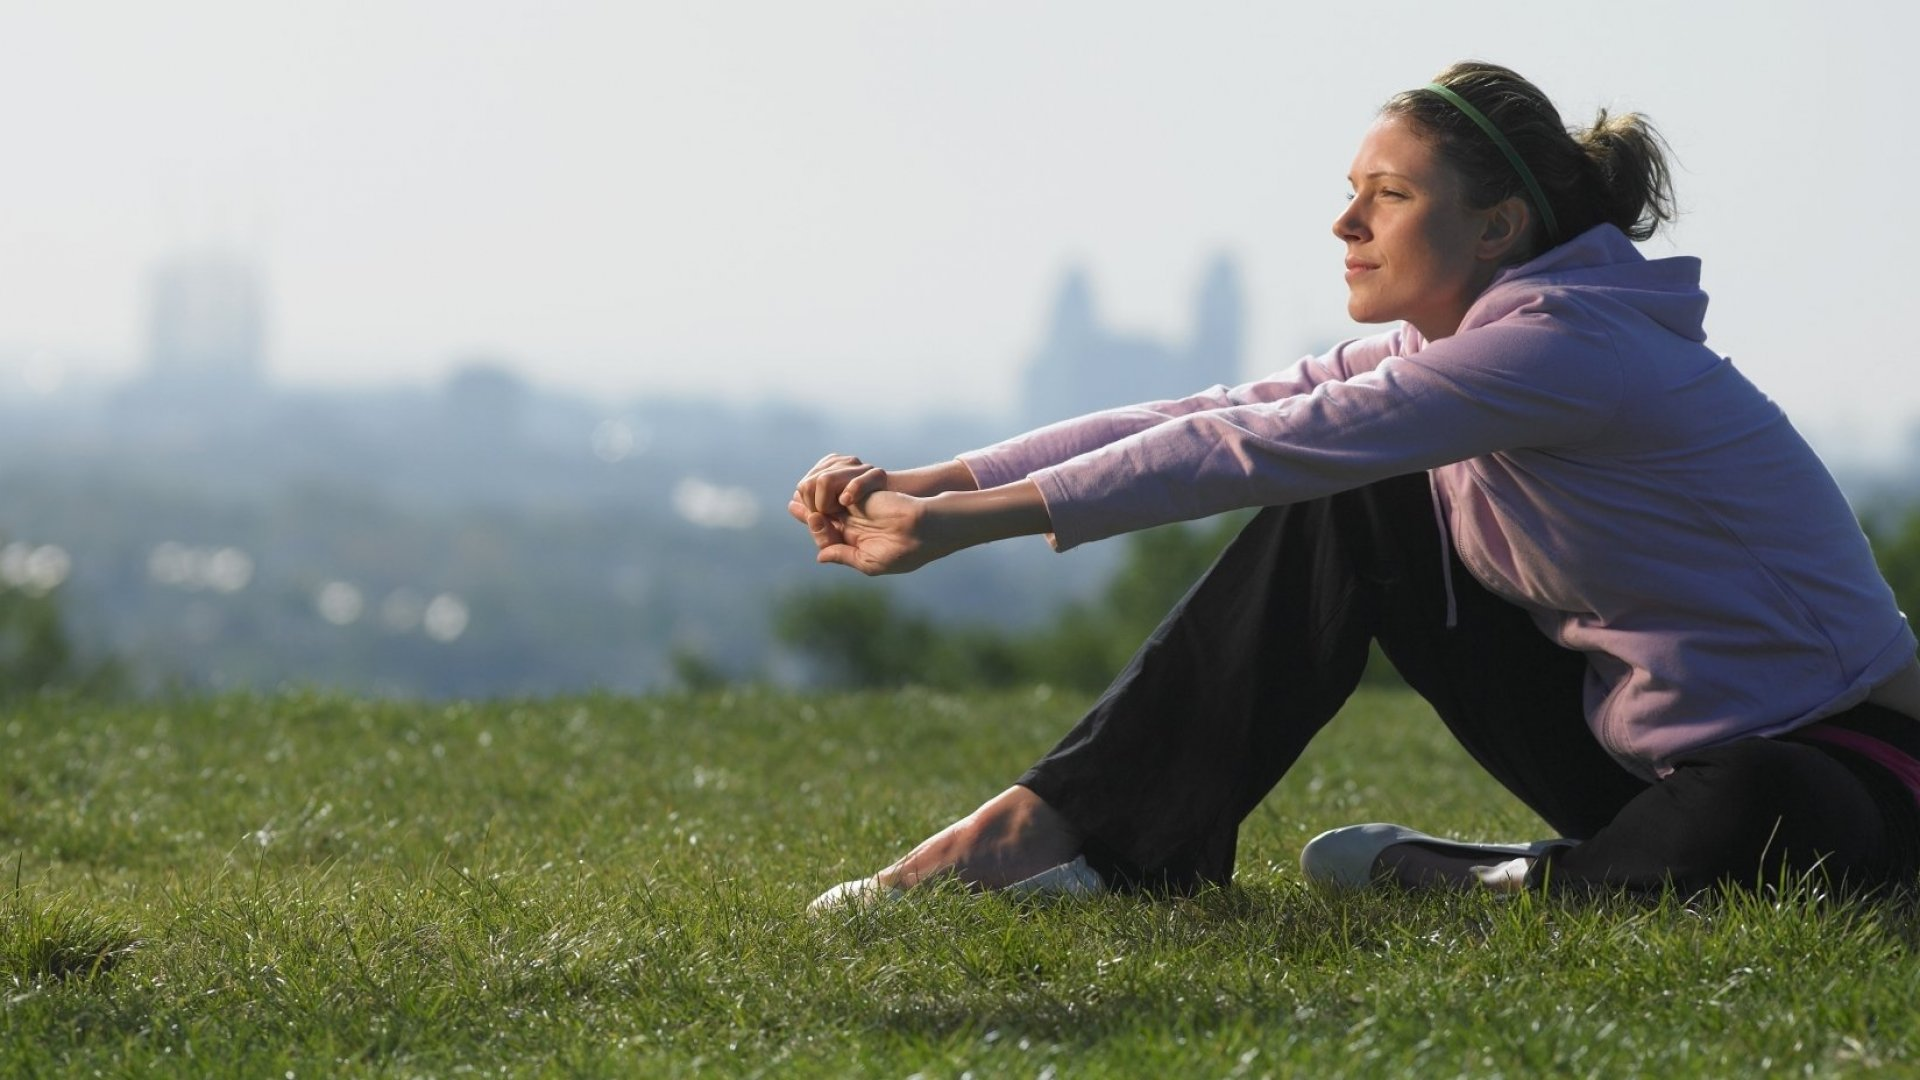 Feeling Unmotivated? 10 Steps to Get You Out of the Funk in an Hour or Less